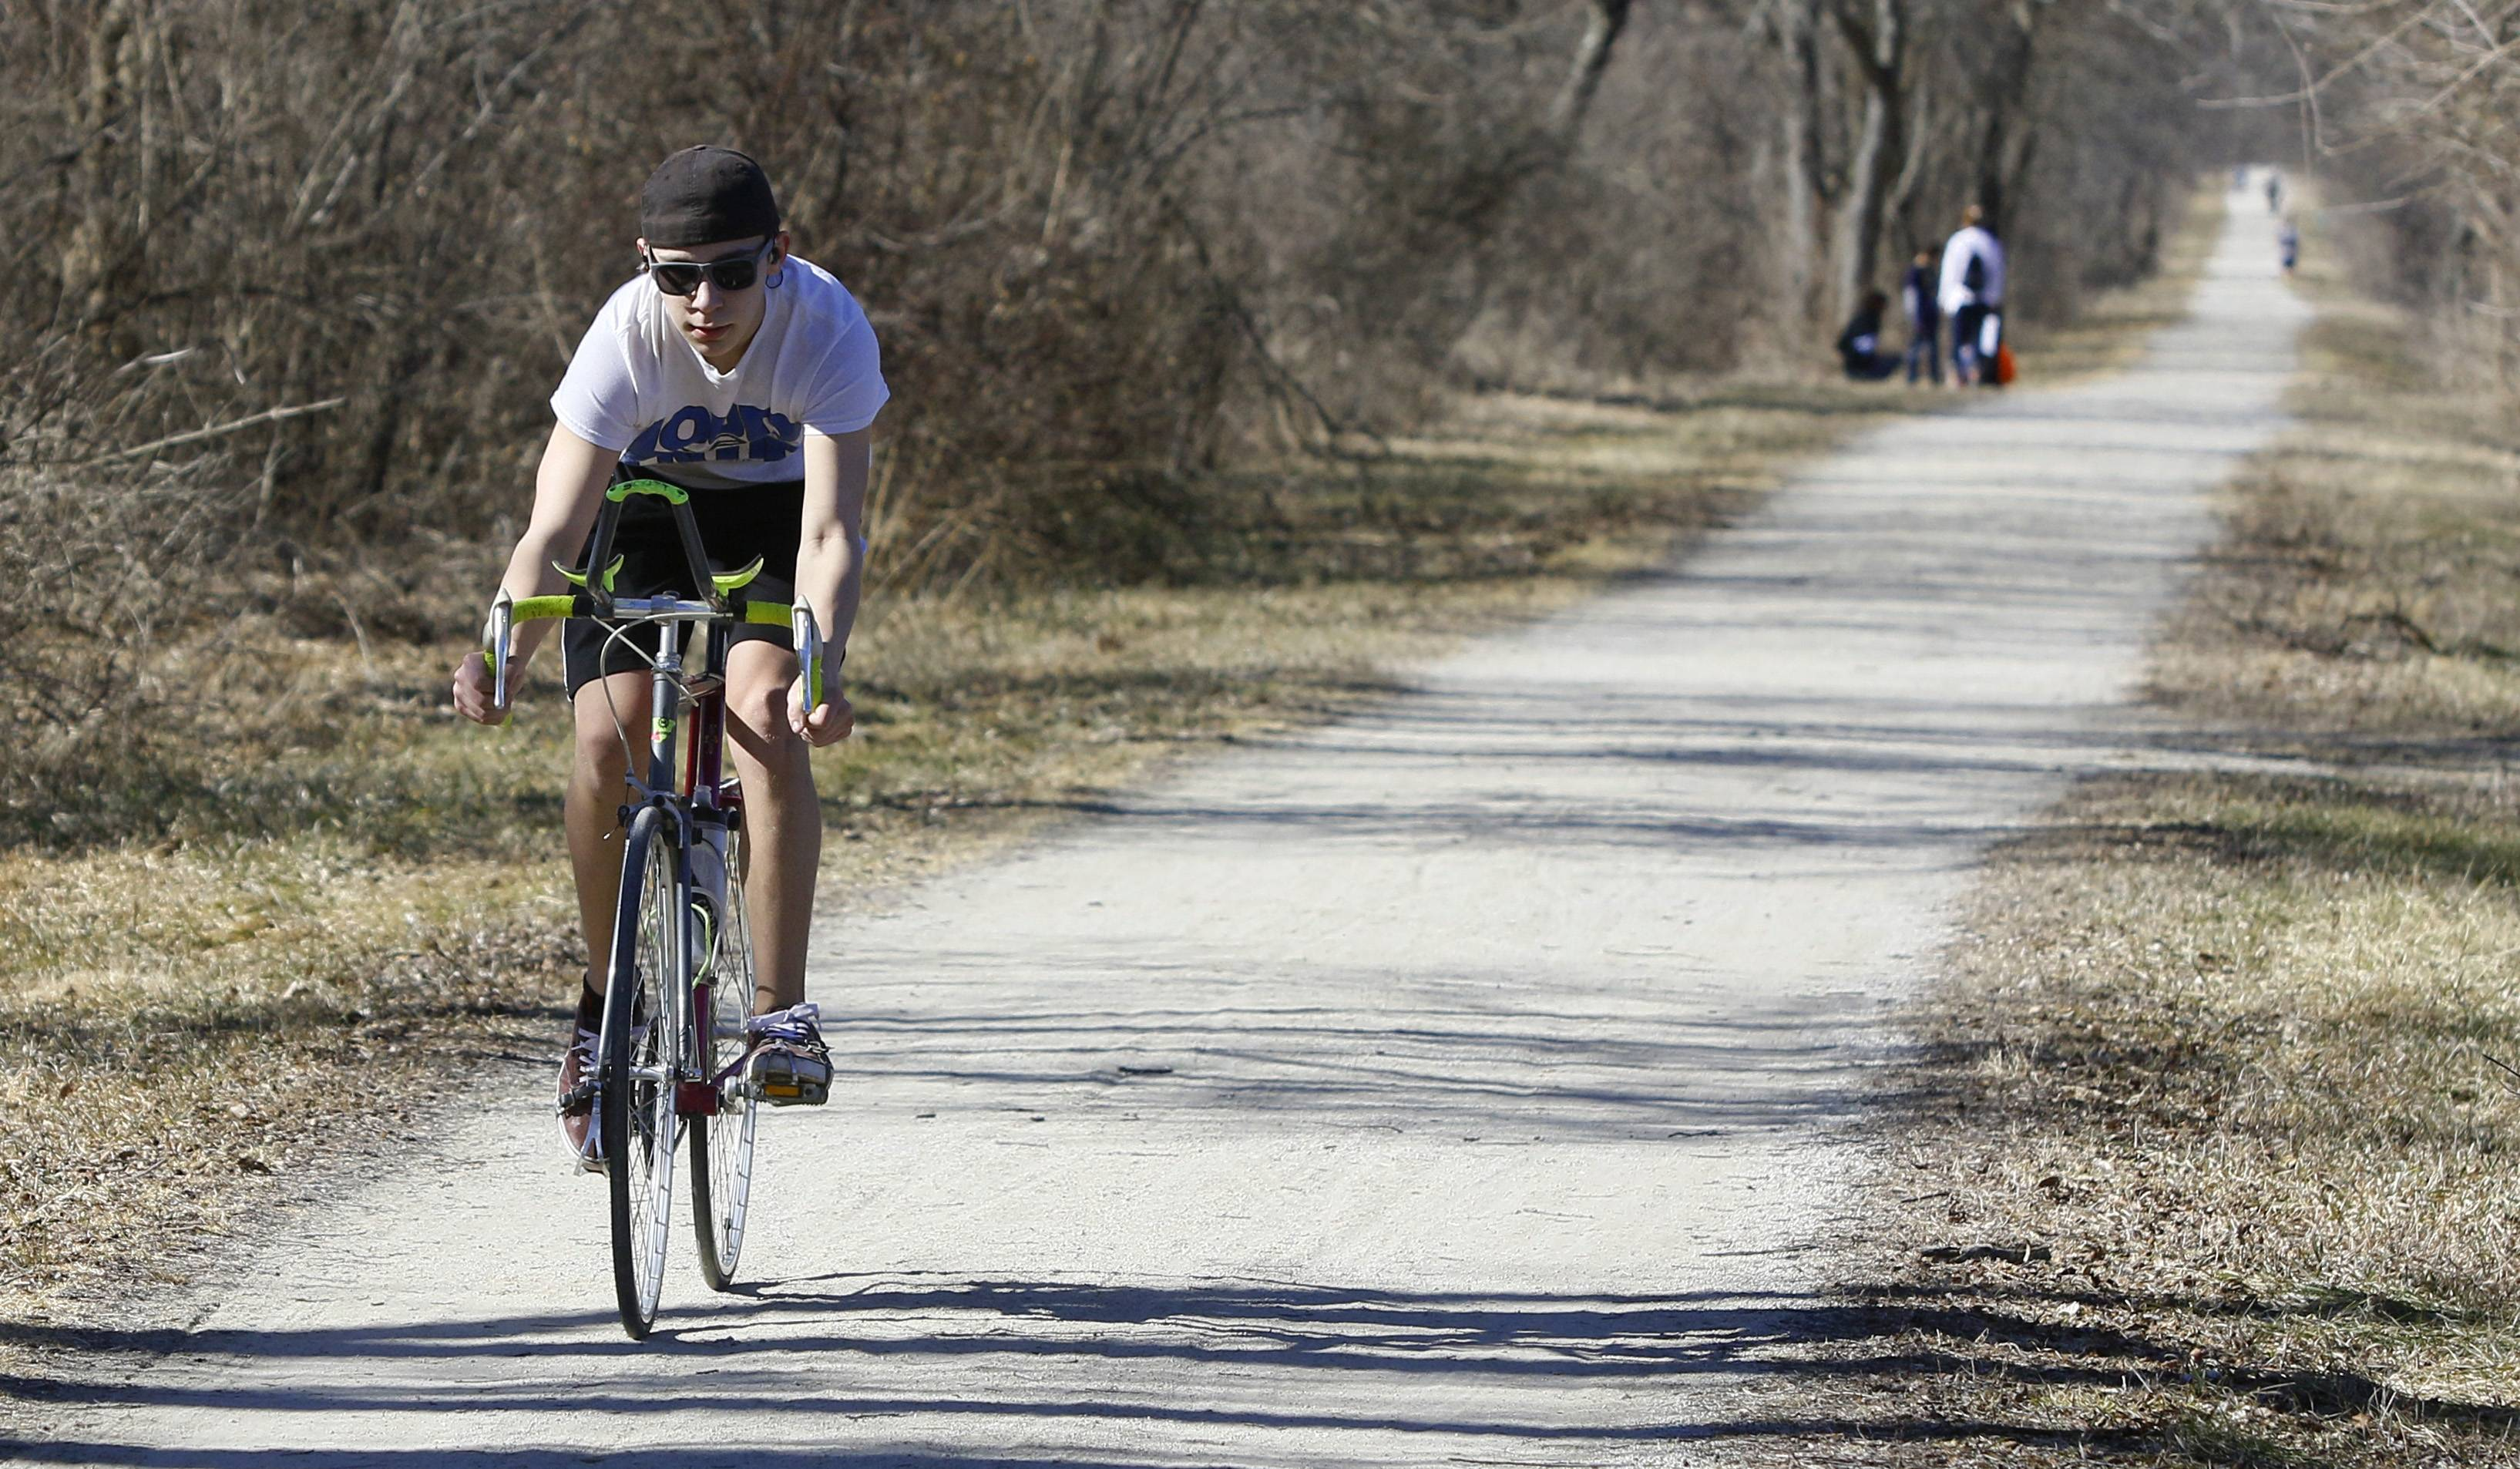 Temperature reaches 70 degrees at O'Hare, shattering 36-year record